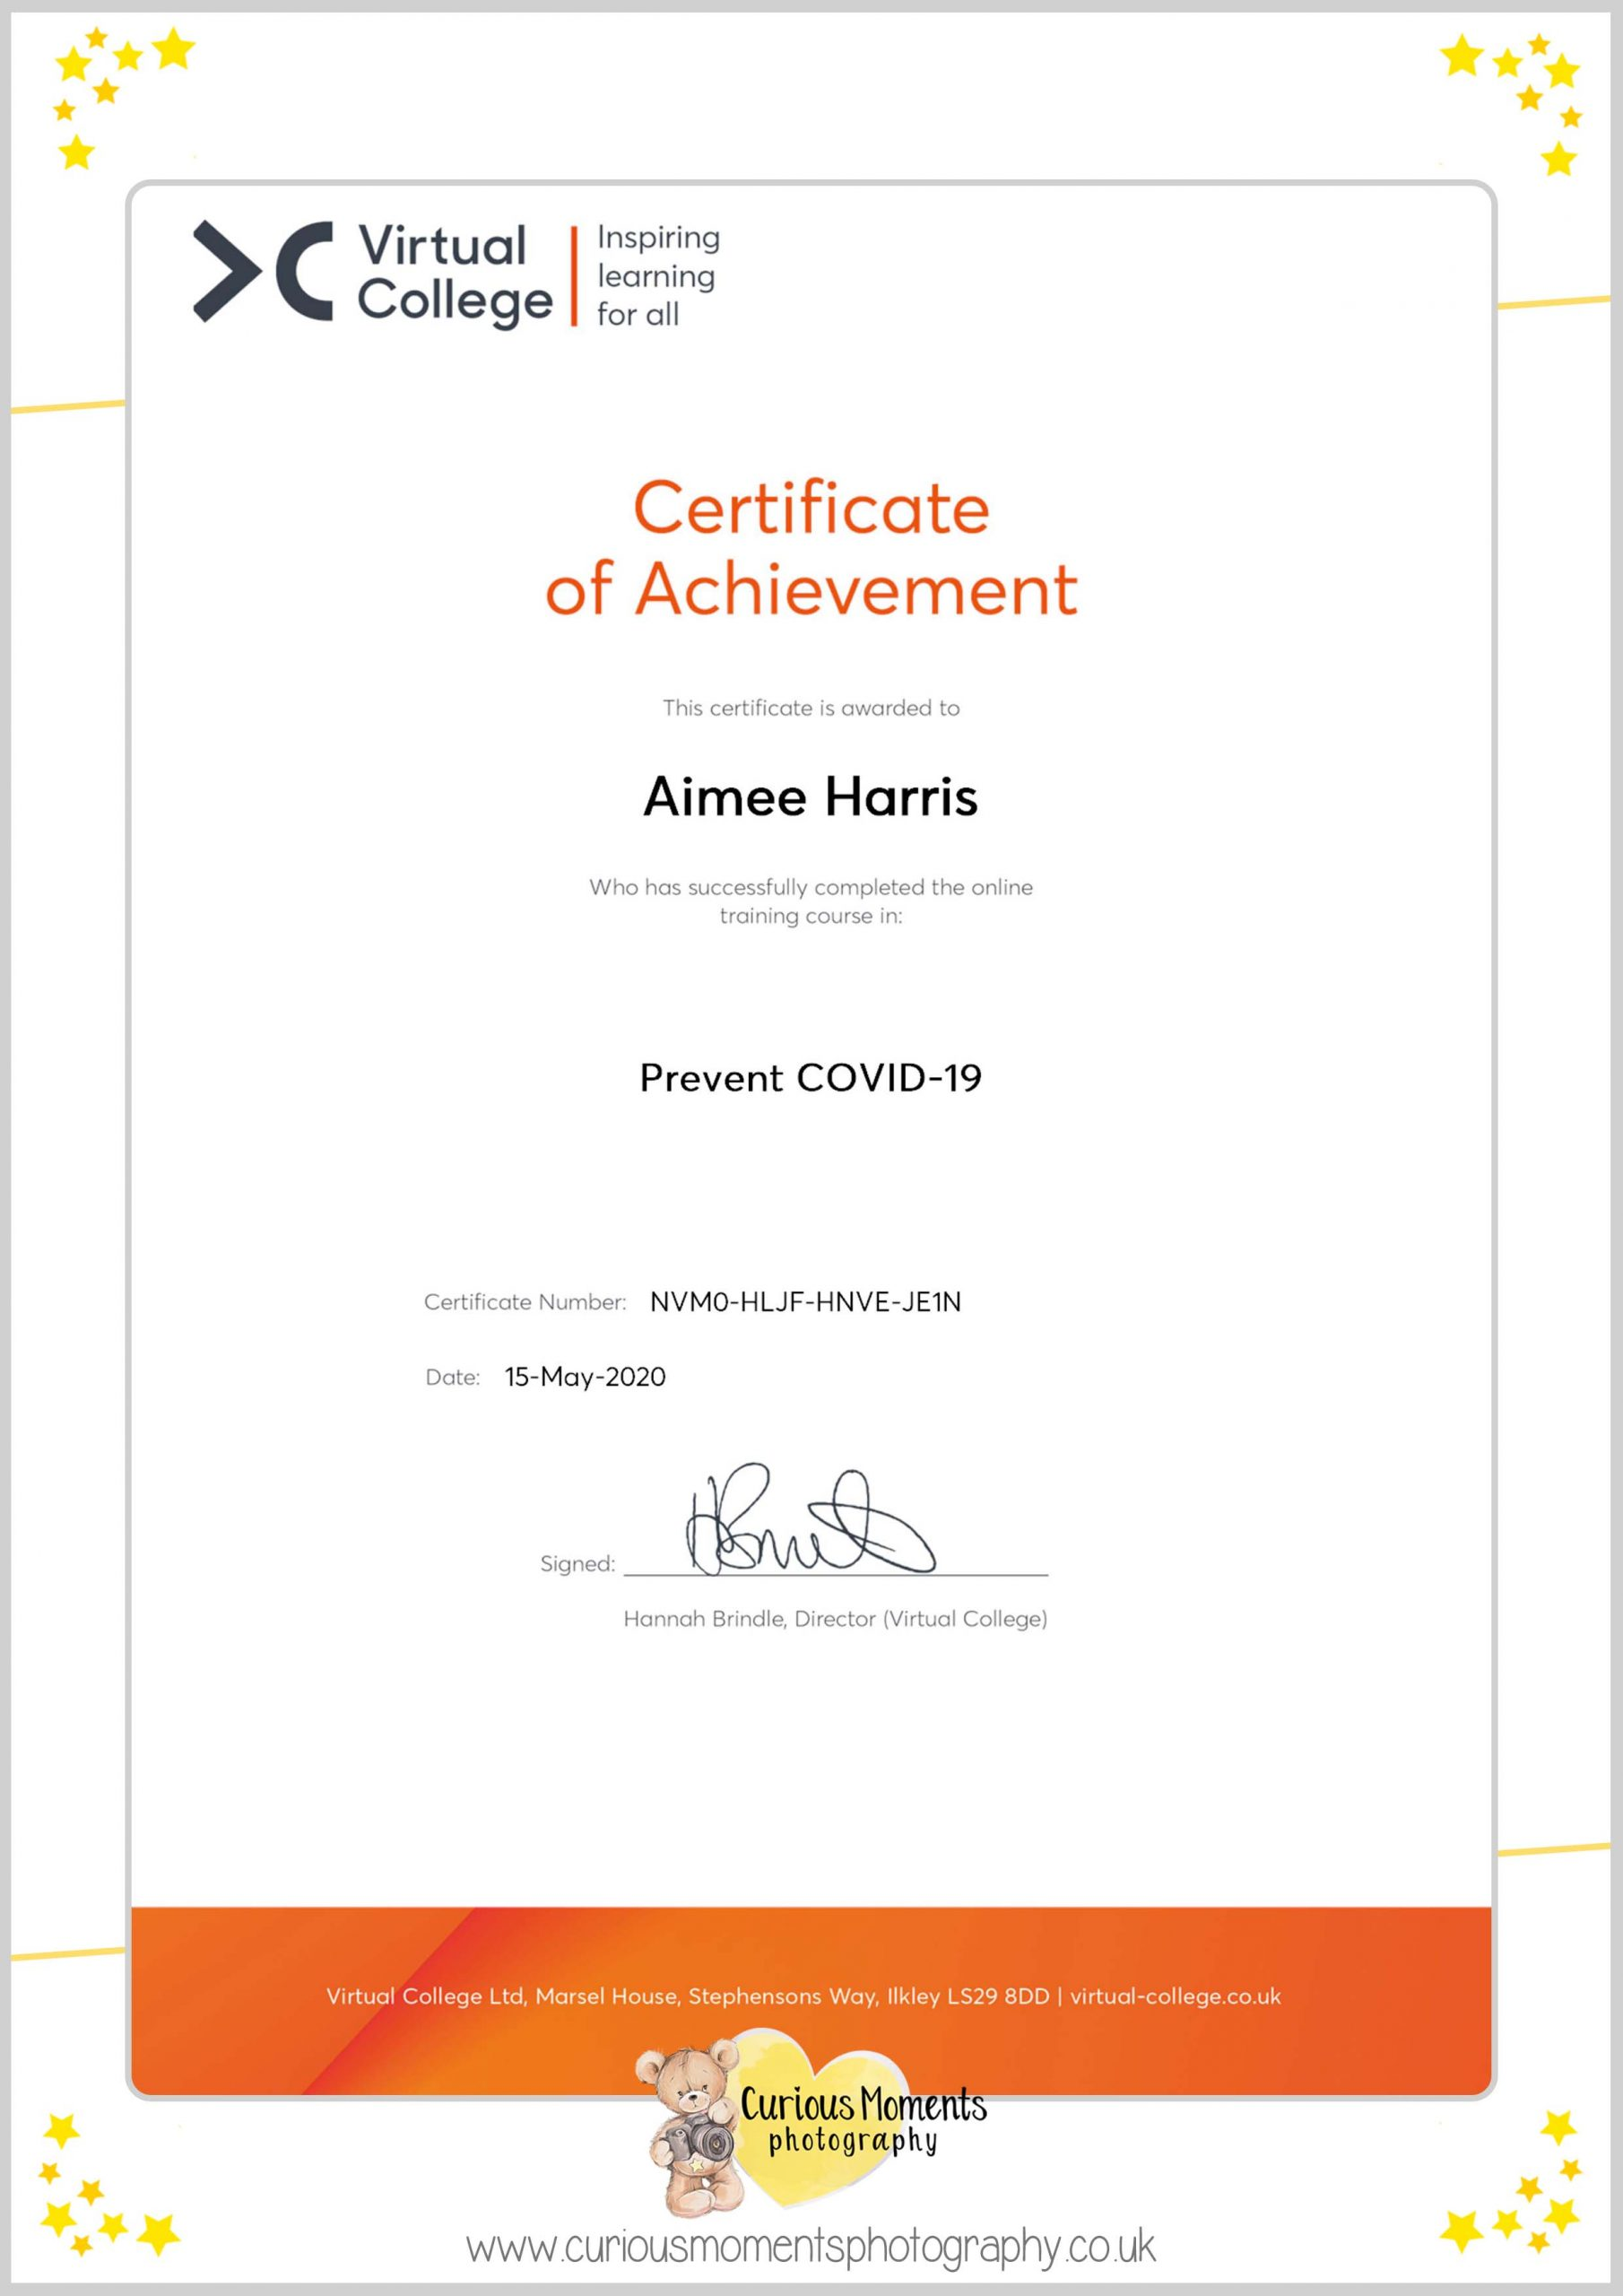 Covid safety certifcate